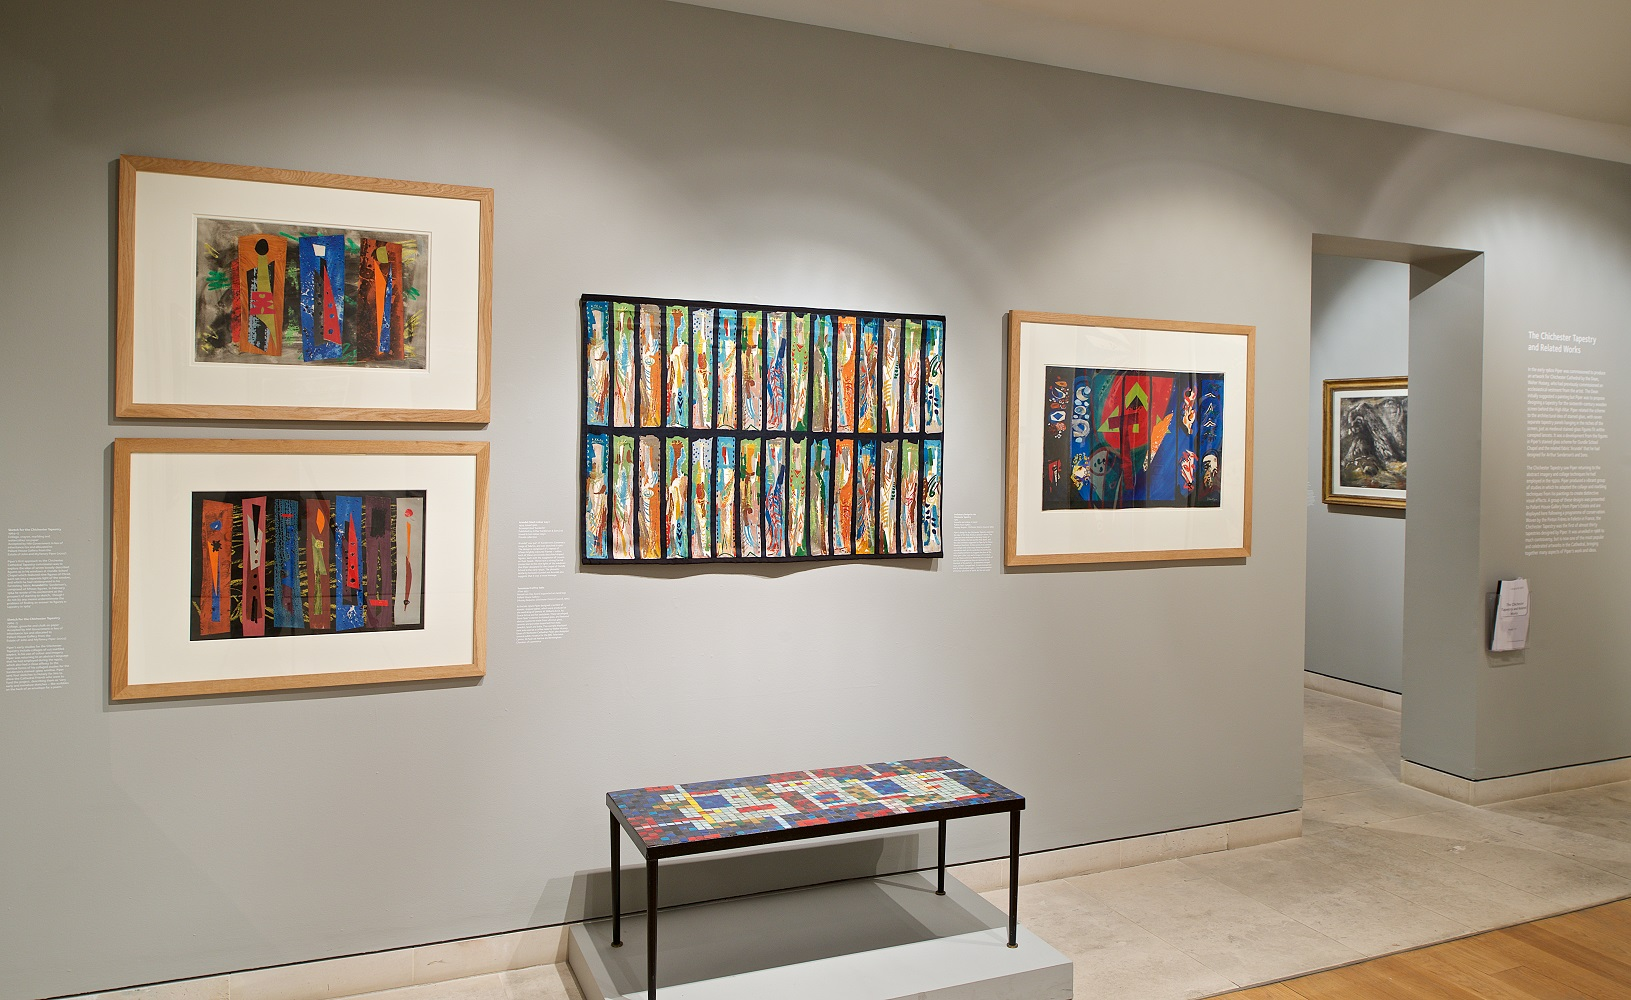 View of gallery showing four abstract wprks of art on the wall with a mosaic table below